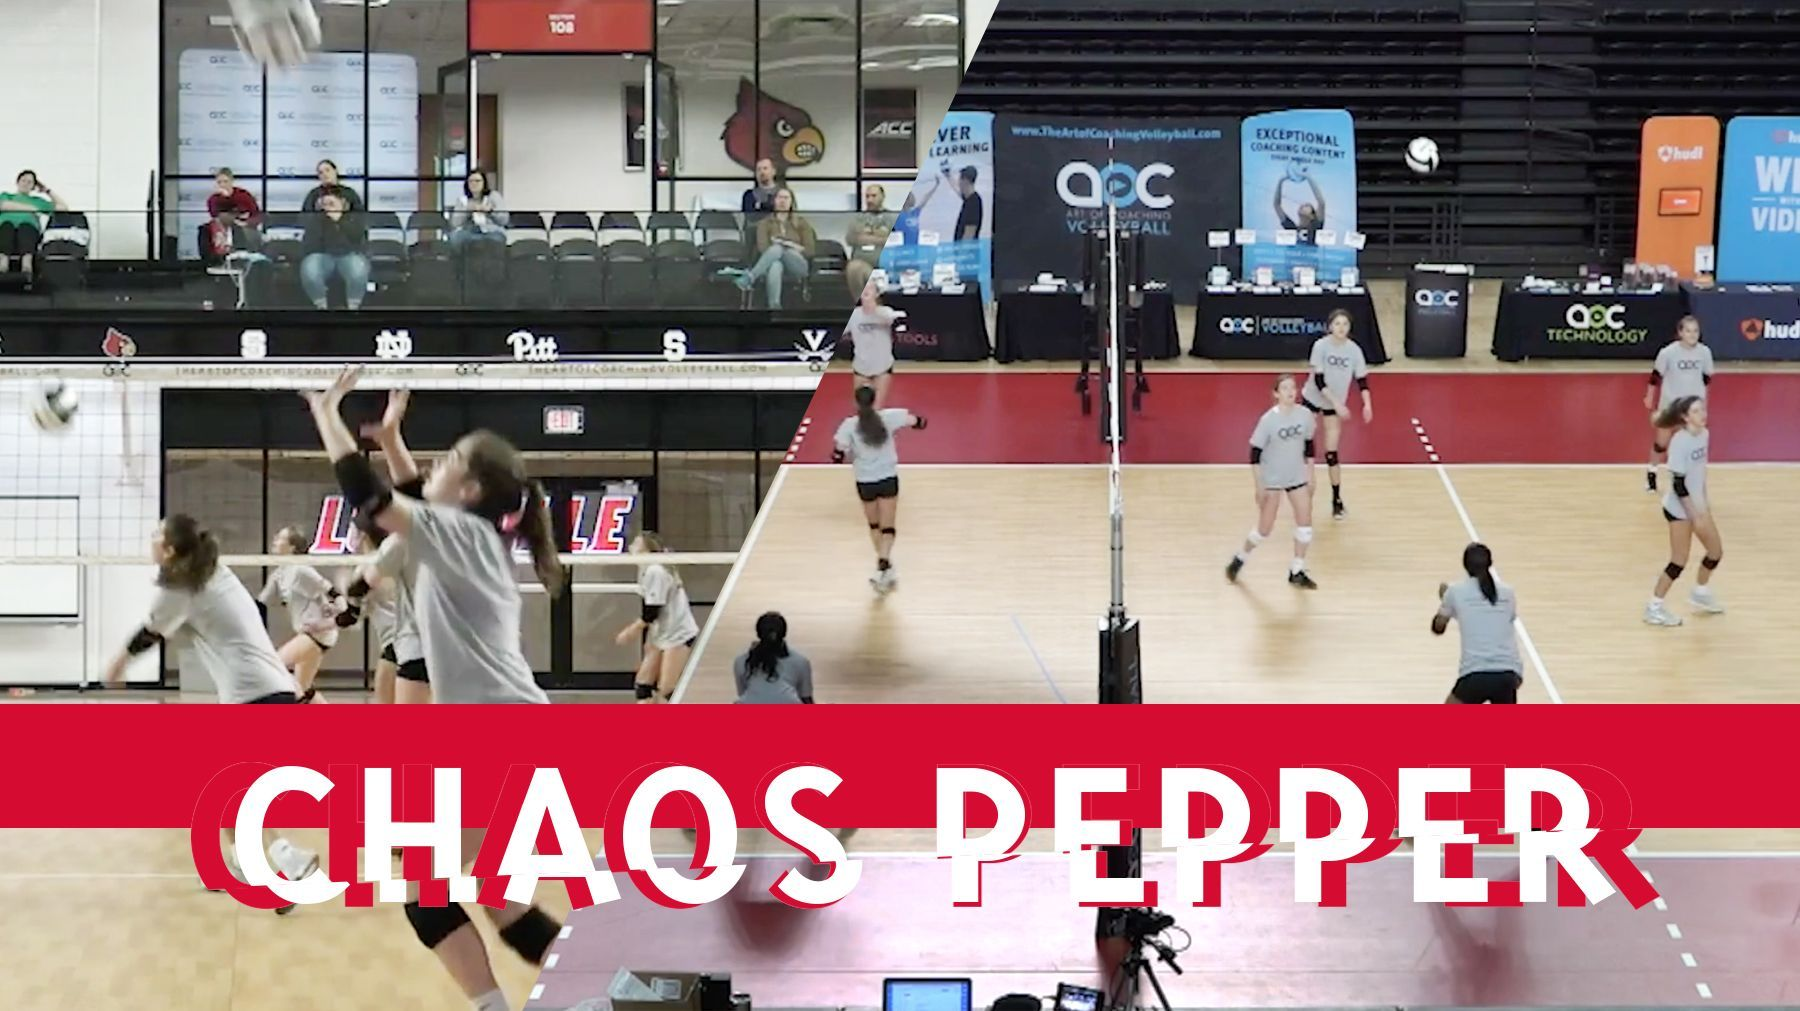 Small Group Drill Chaos Pepper Coaching Volleyball Volleyball New Sports Cars